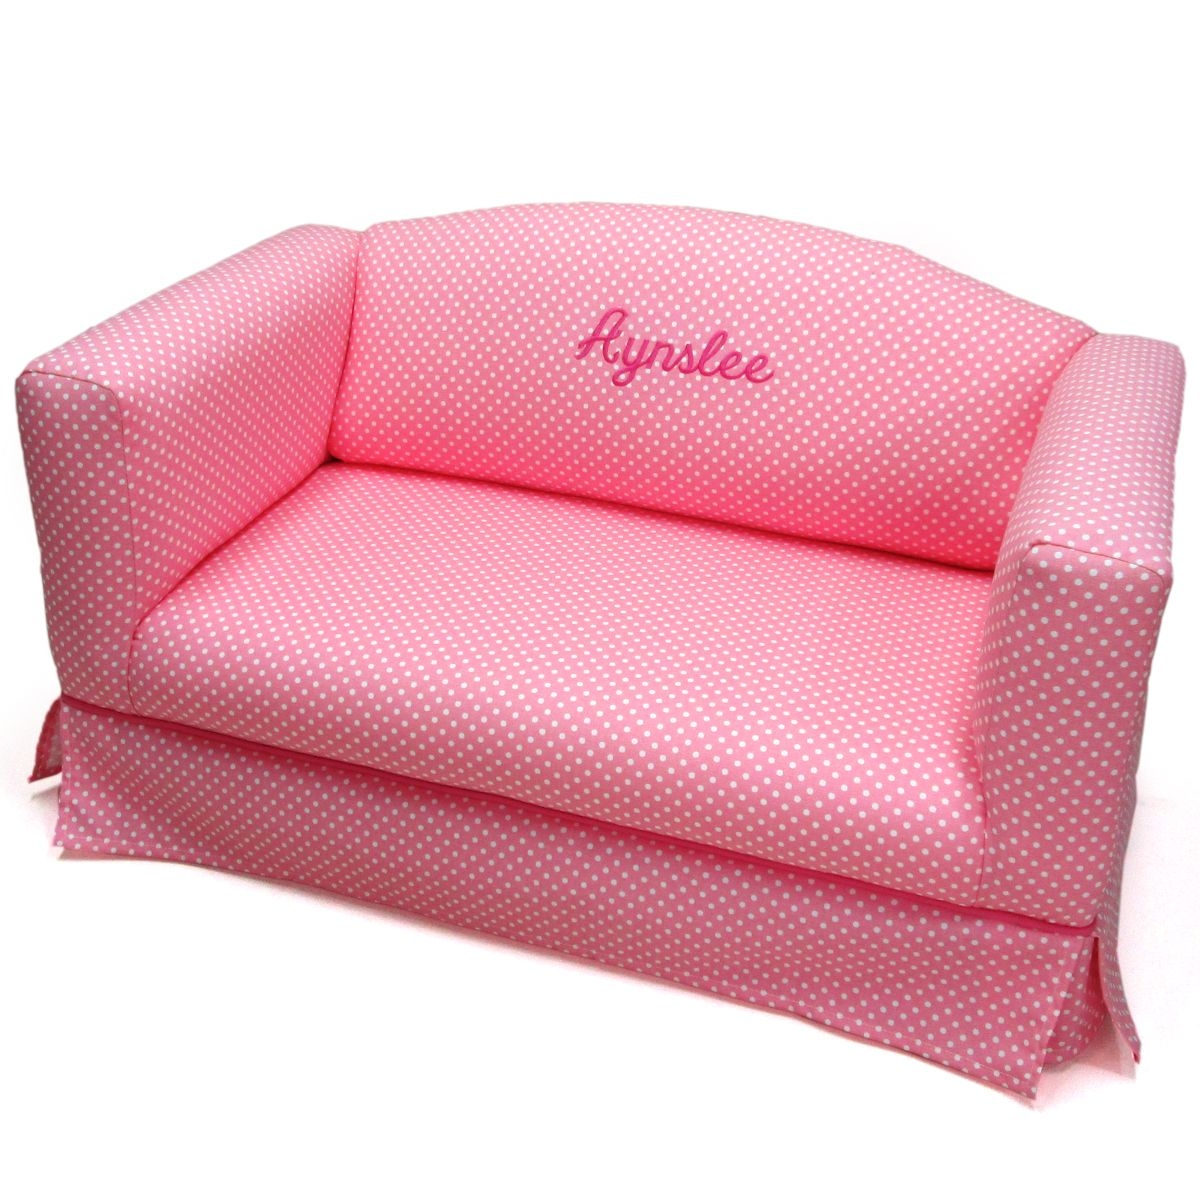 personalized kids chair diy toddler table and chairs wood 15 43 sofas sofa ideas